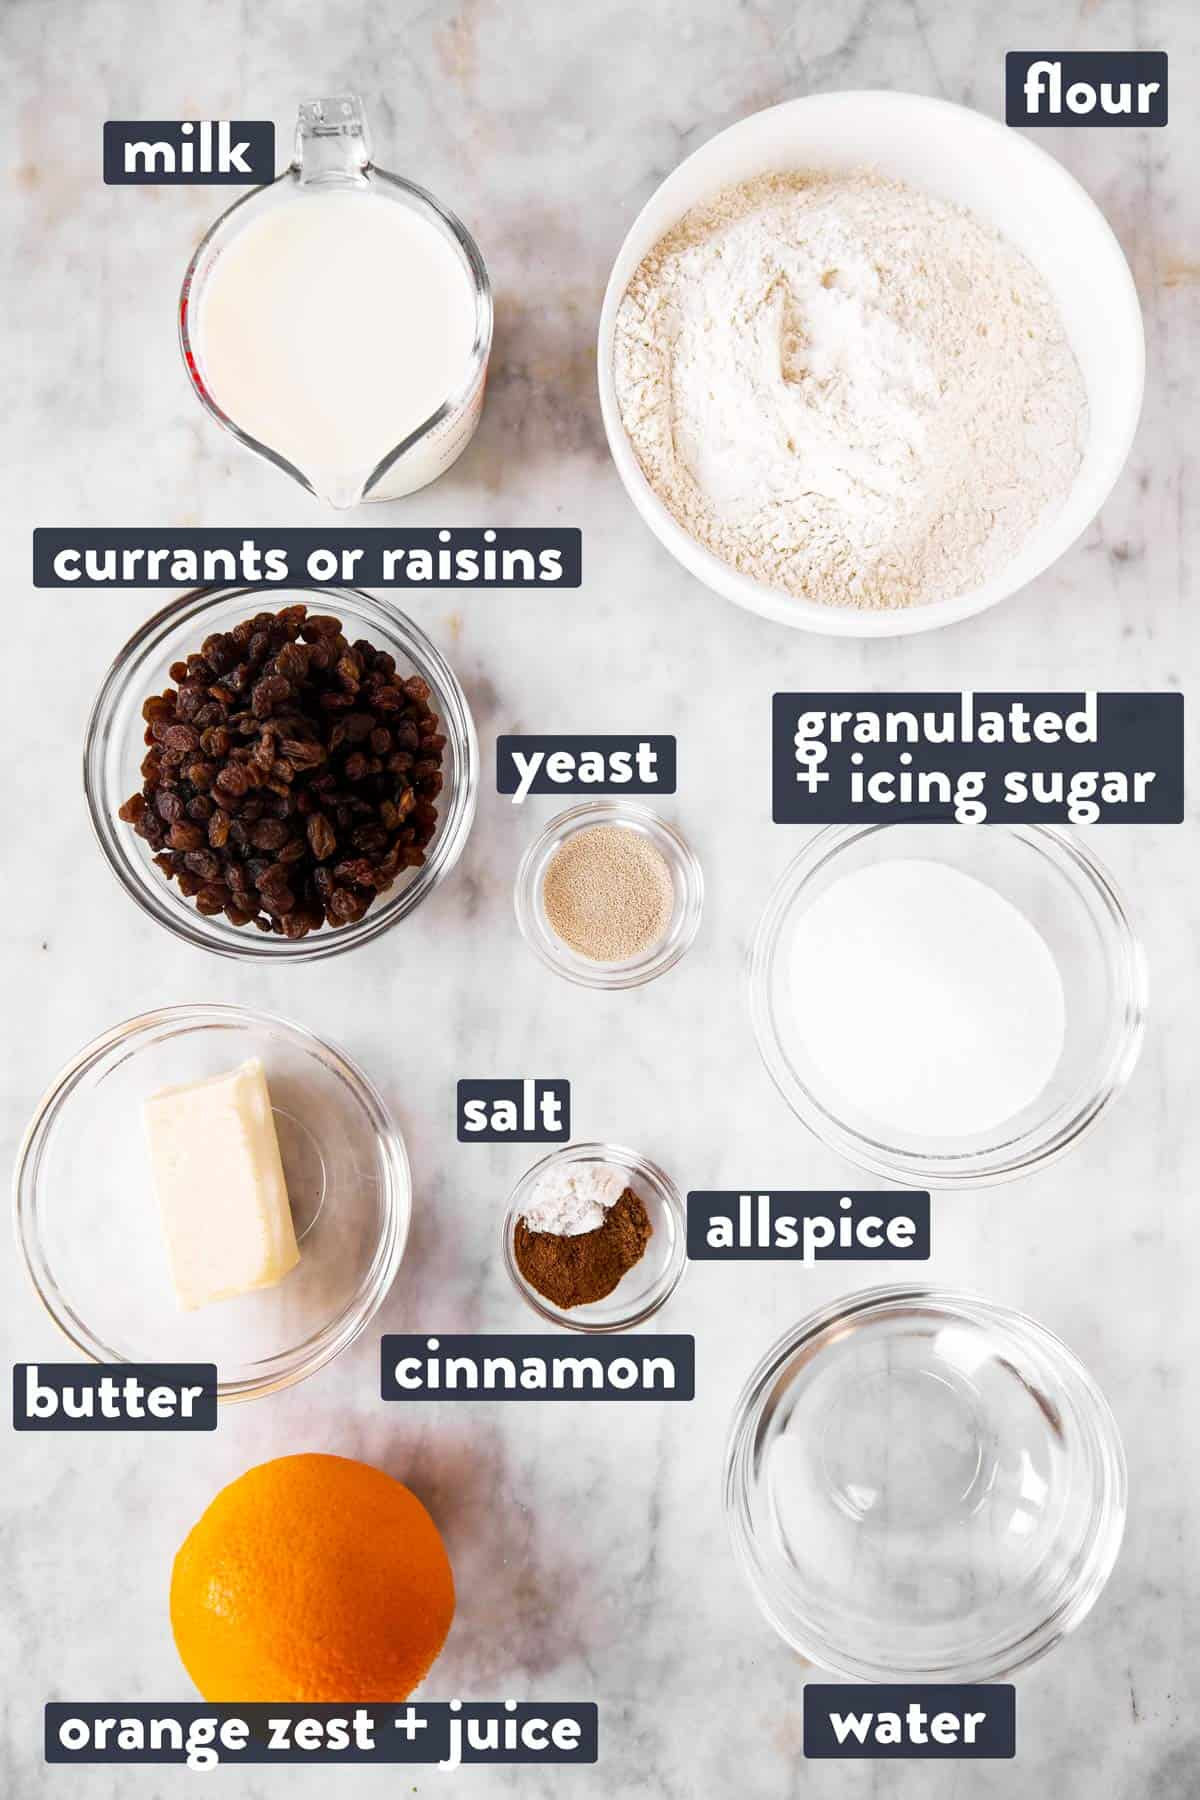 ingredients for hot cross buns with text labels